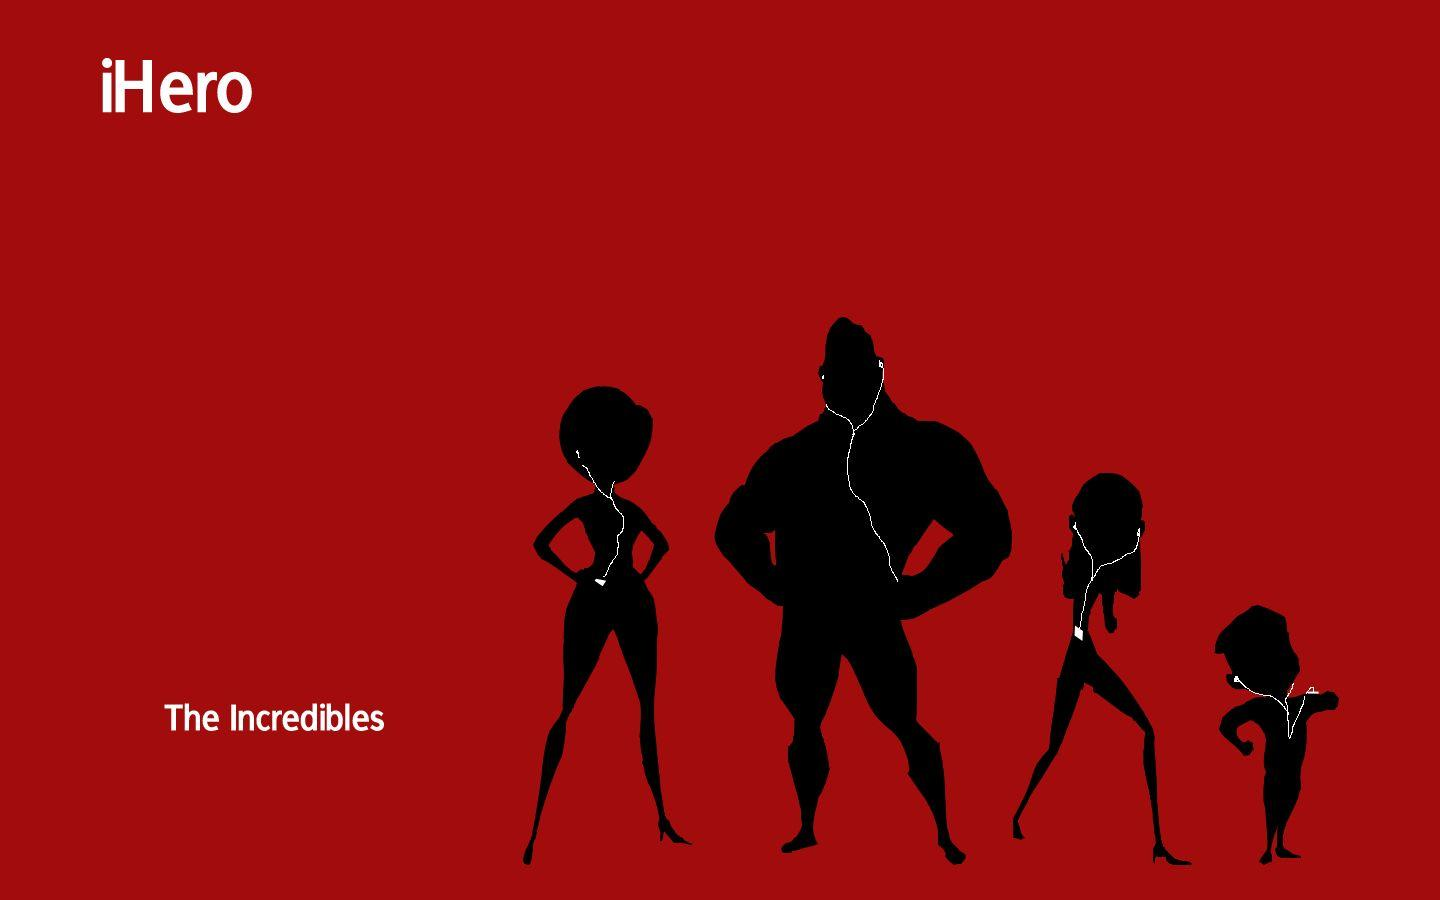 Computer wallpapers for free, the Incredibles iPod style backgrounds